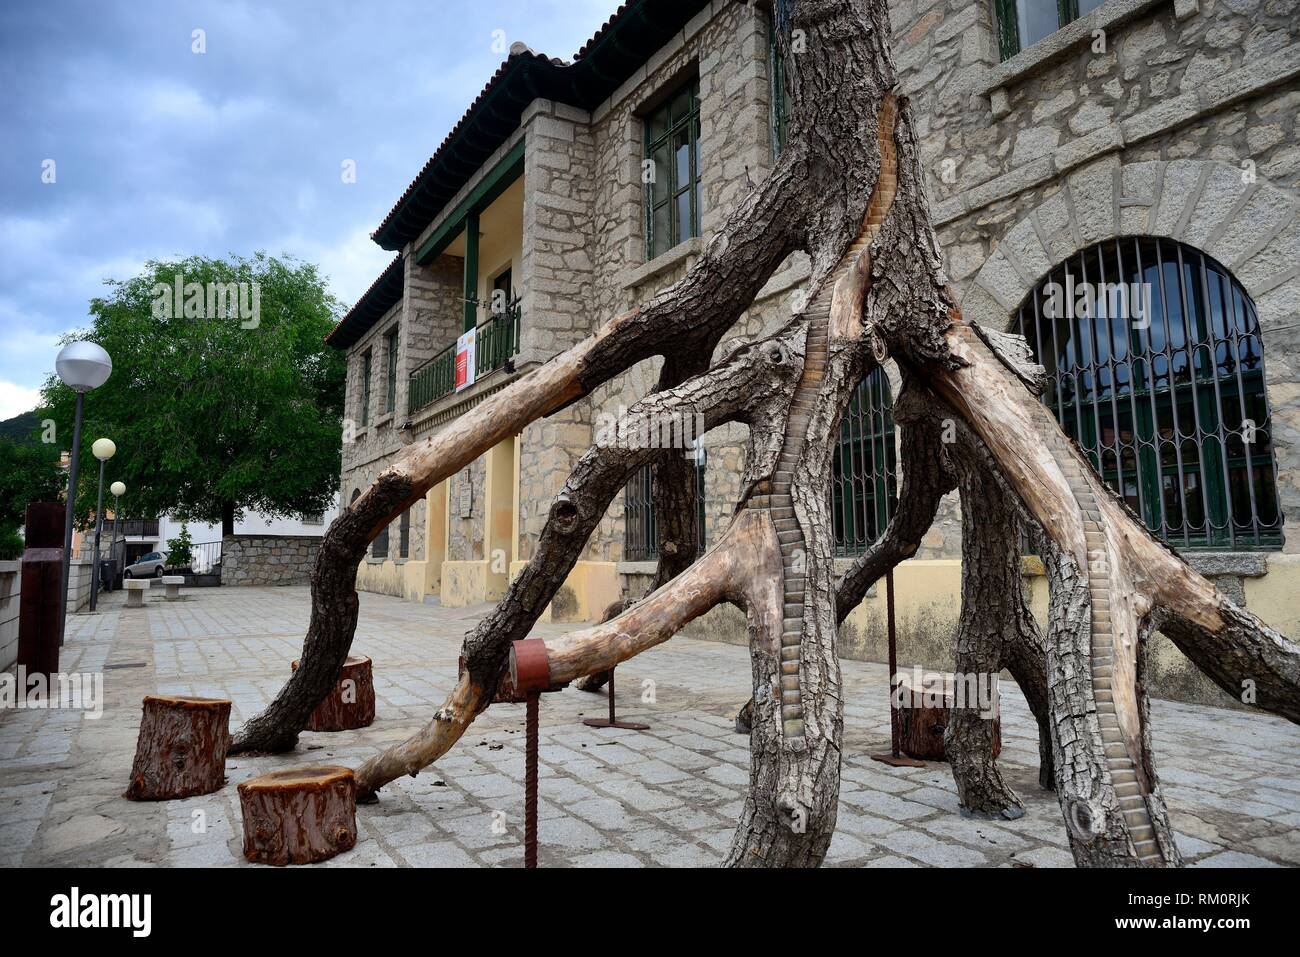 Artistic tree carving in Old Schools of Bustarviejo, Madrid, Spain. - Stock Image